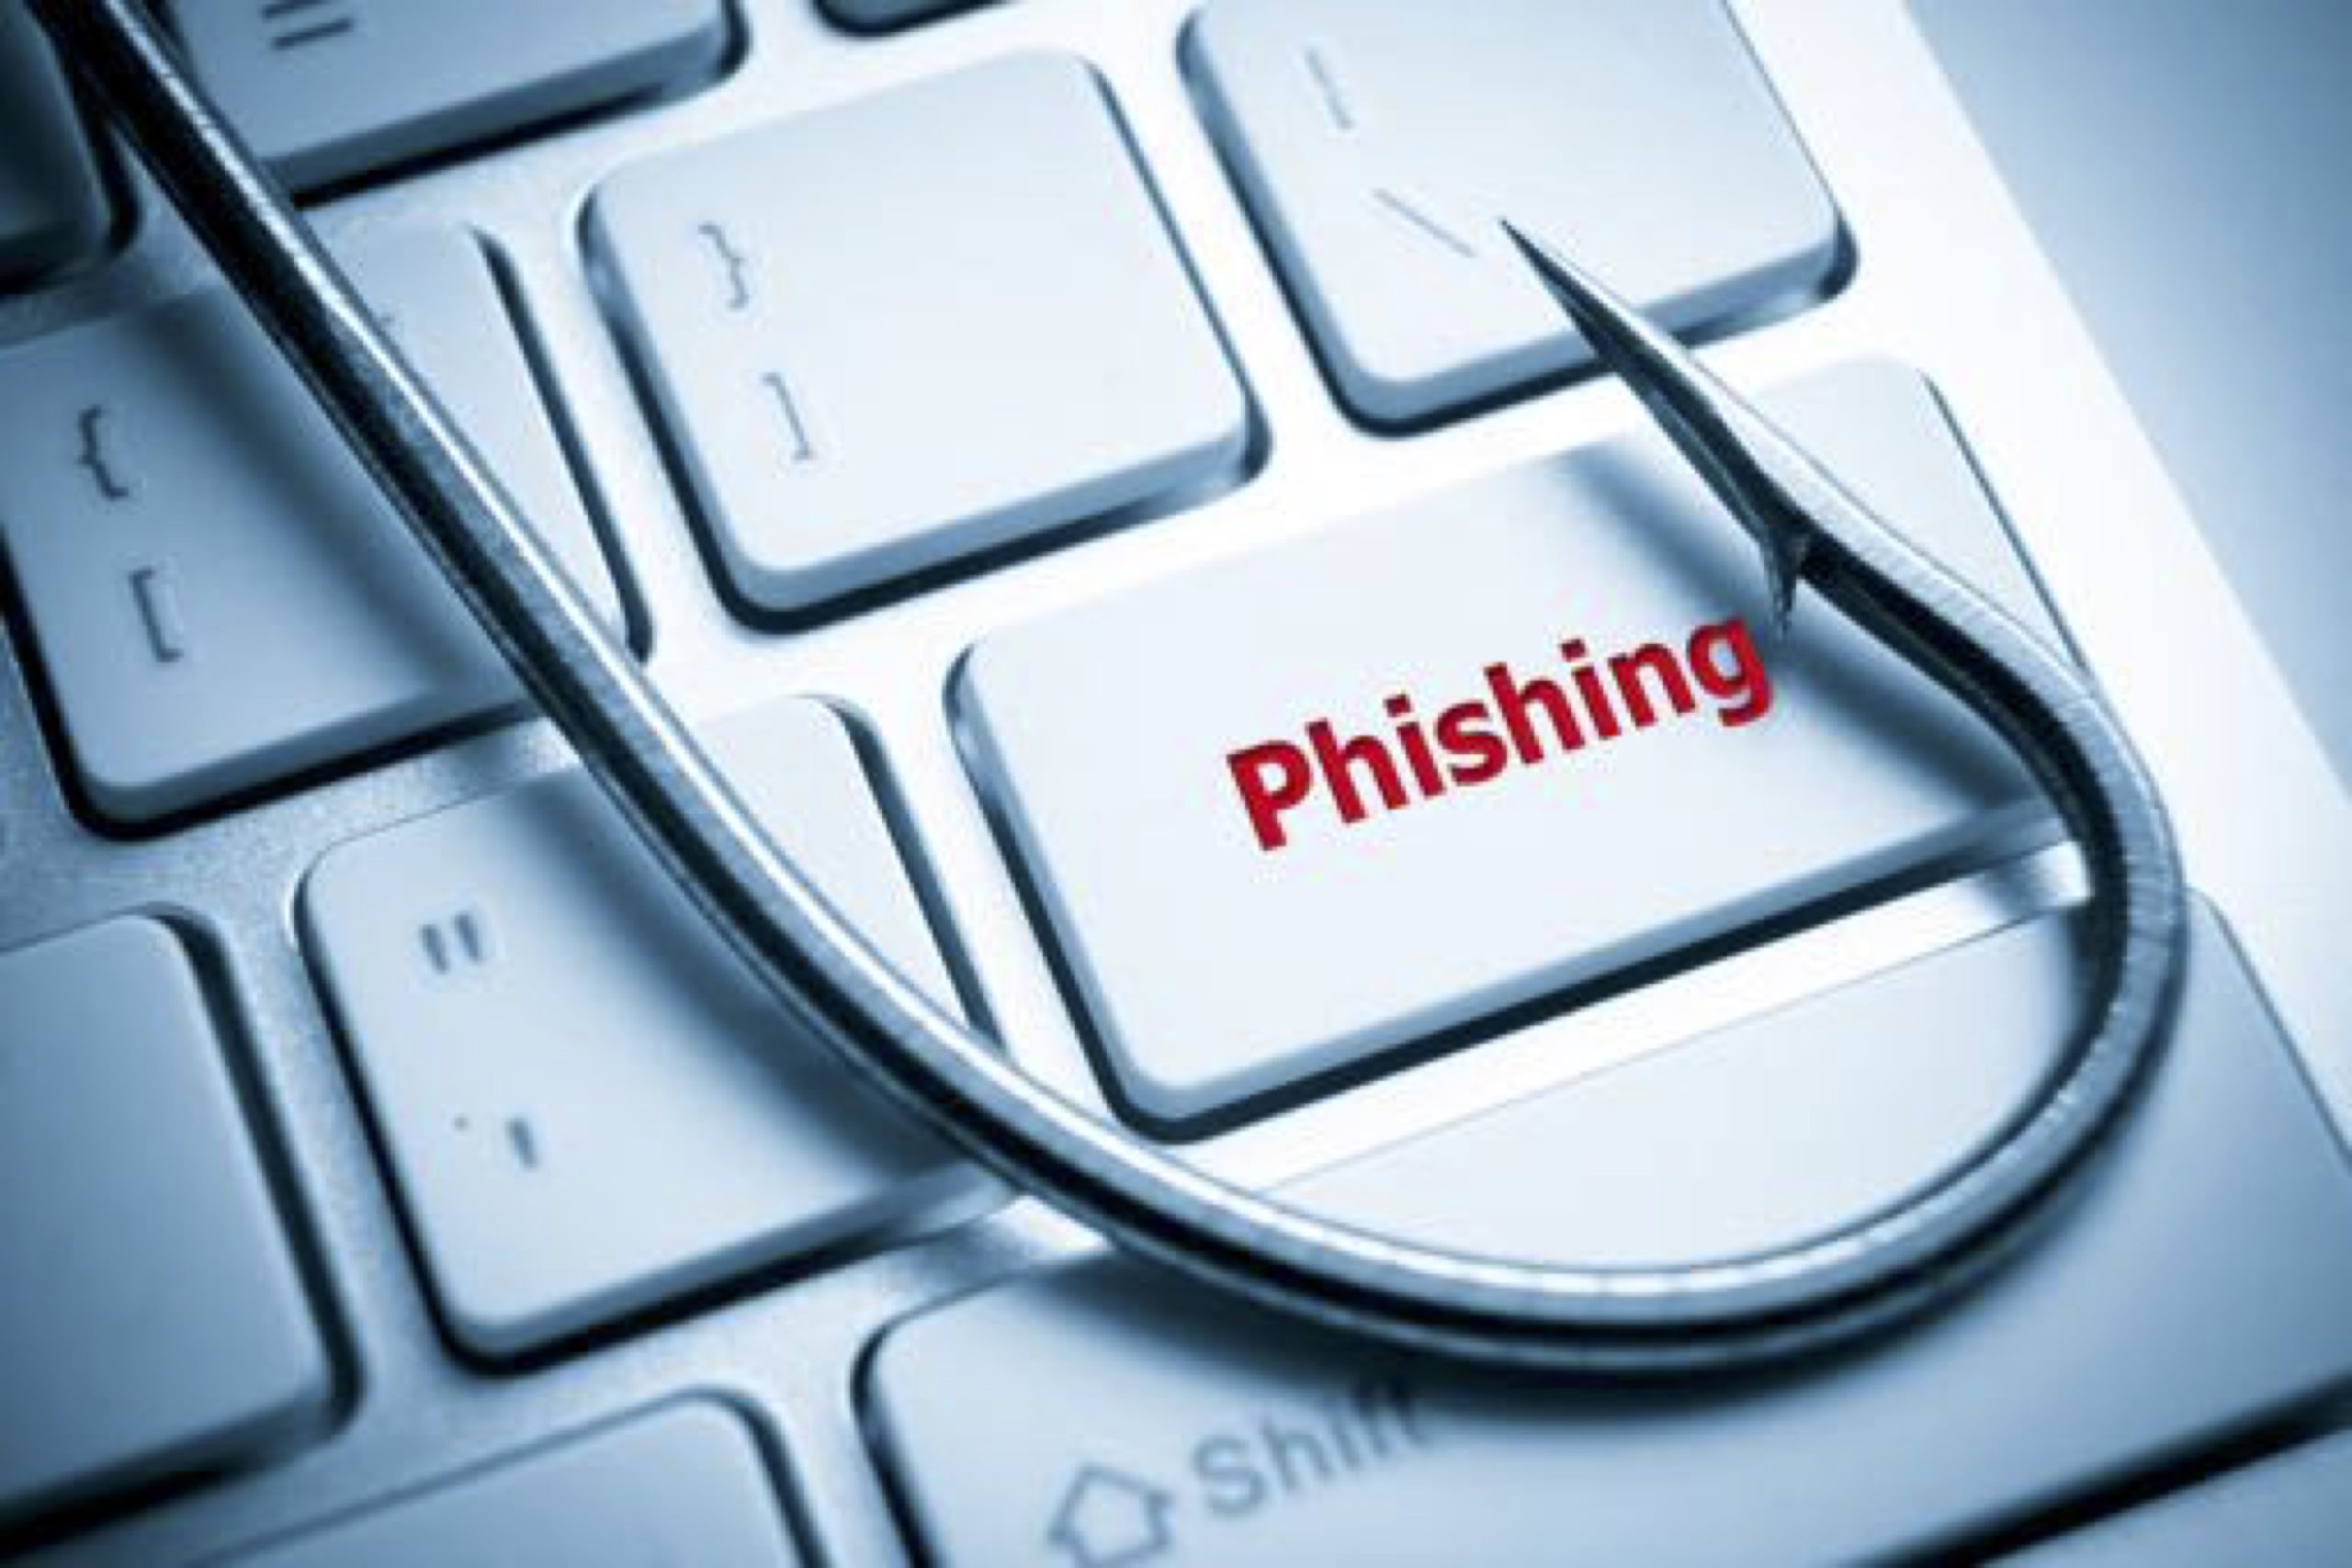 Phishing: Don't Take the Bait